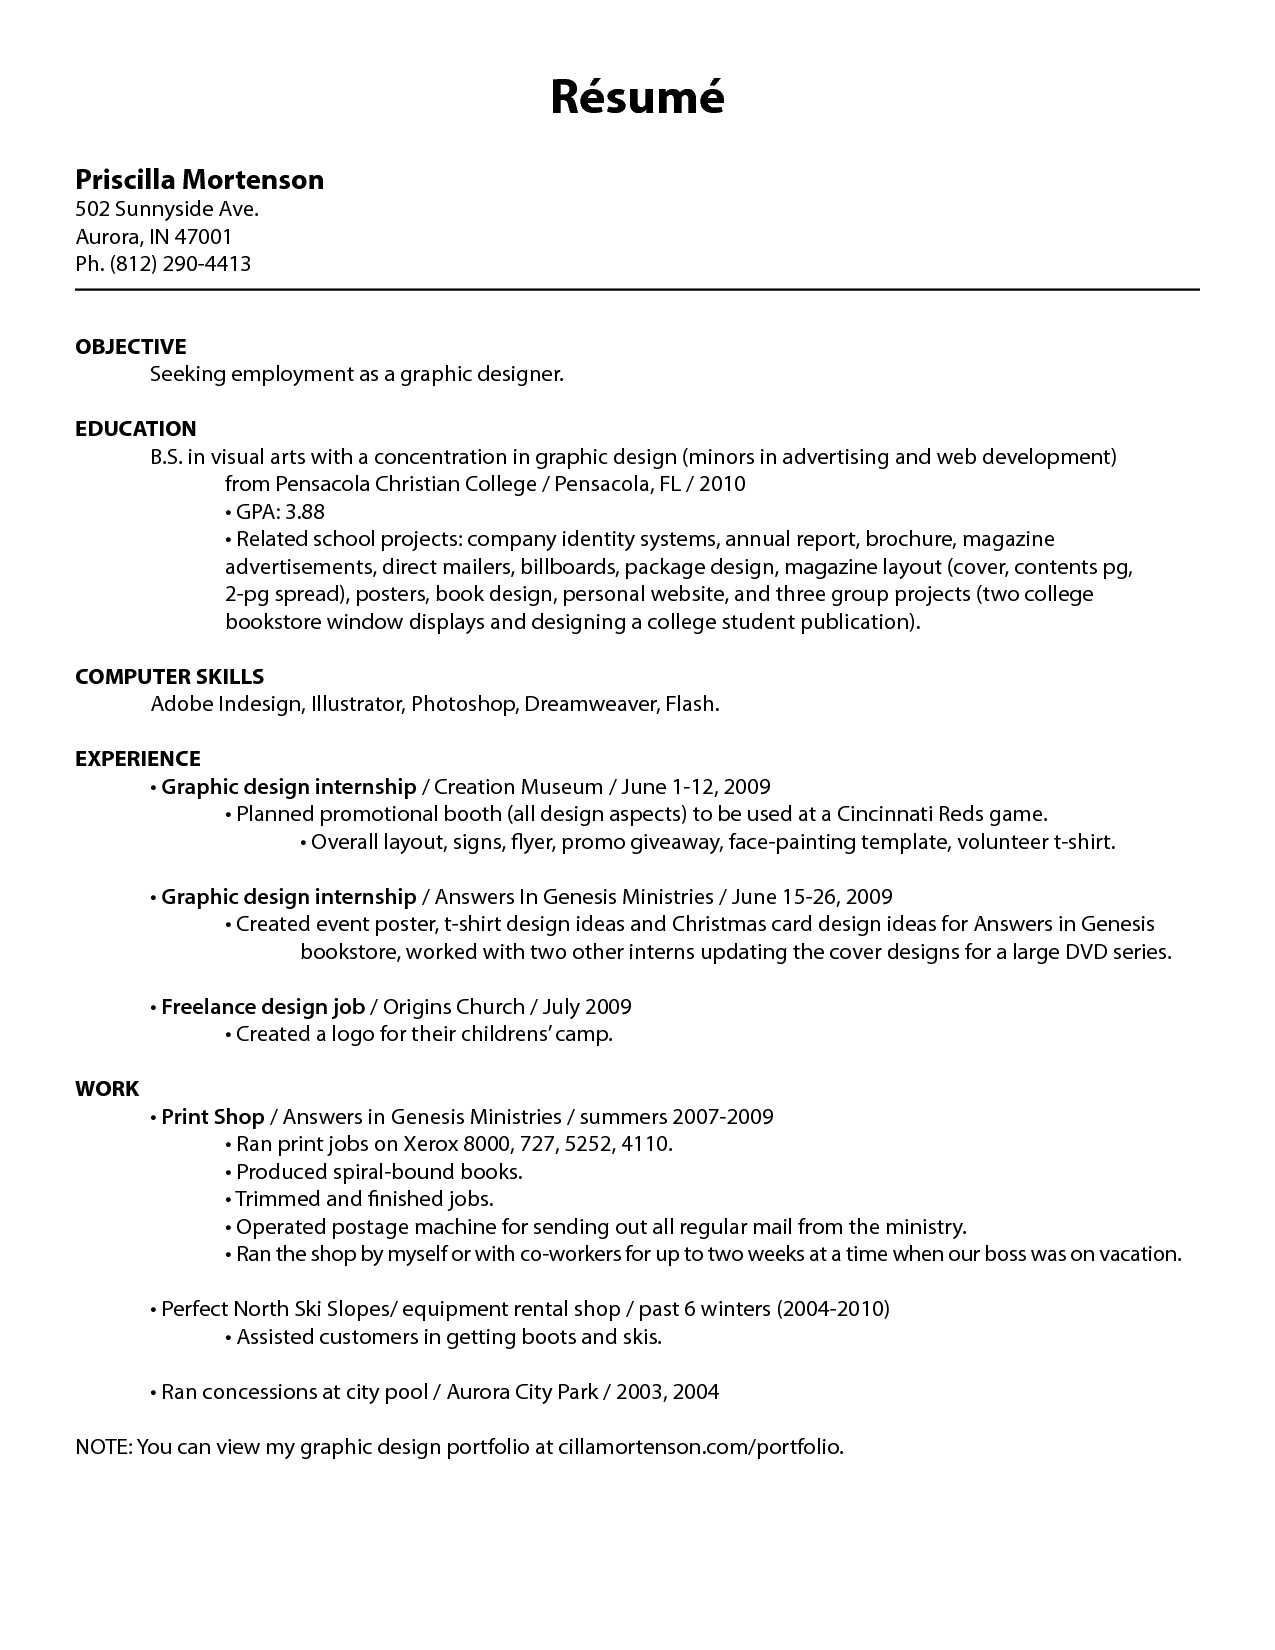 11 Resume Formats You Can Choose From Cover Letter For Resume